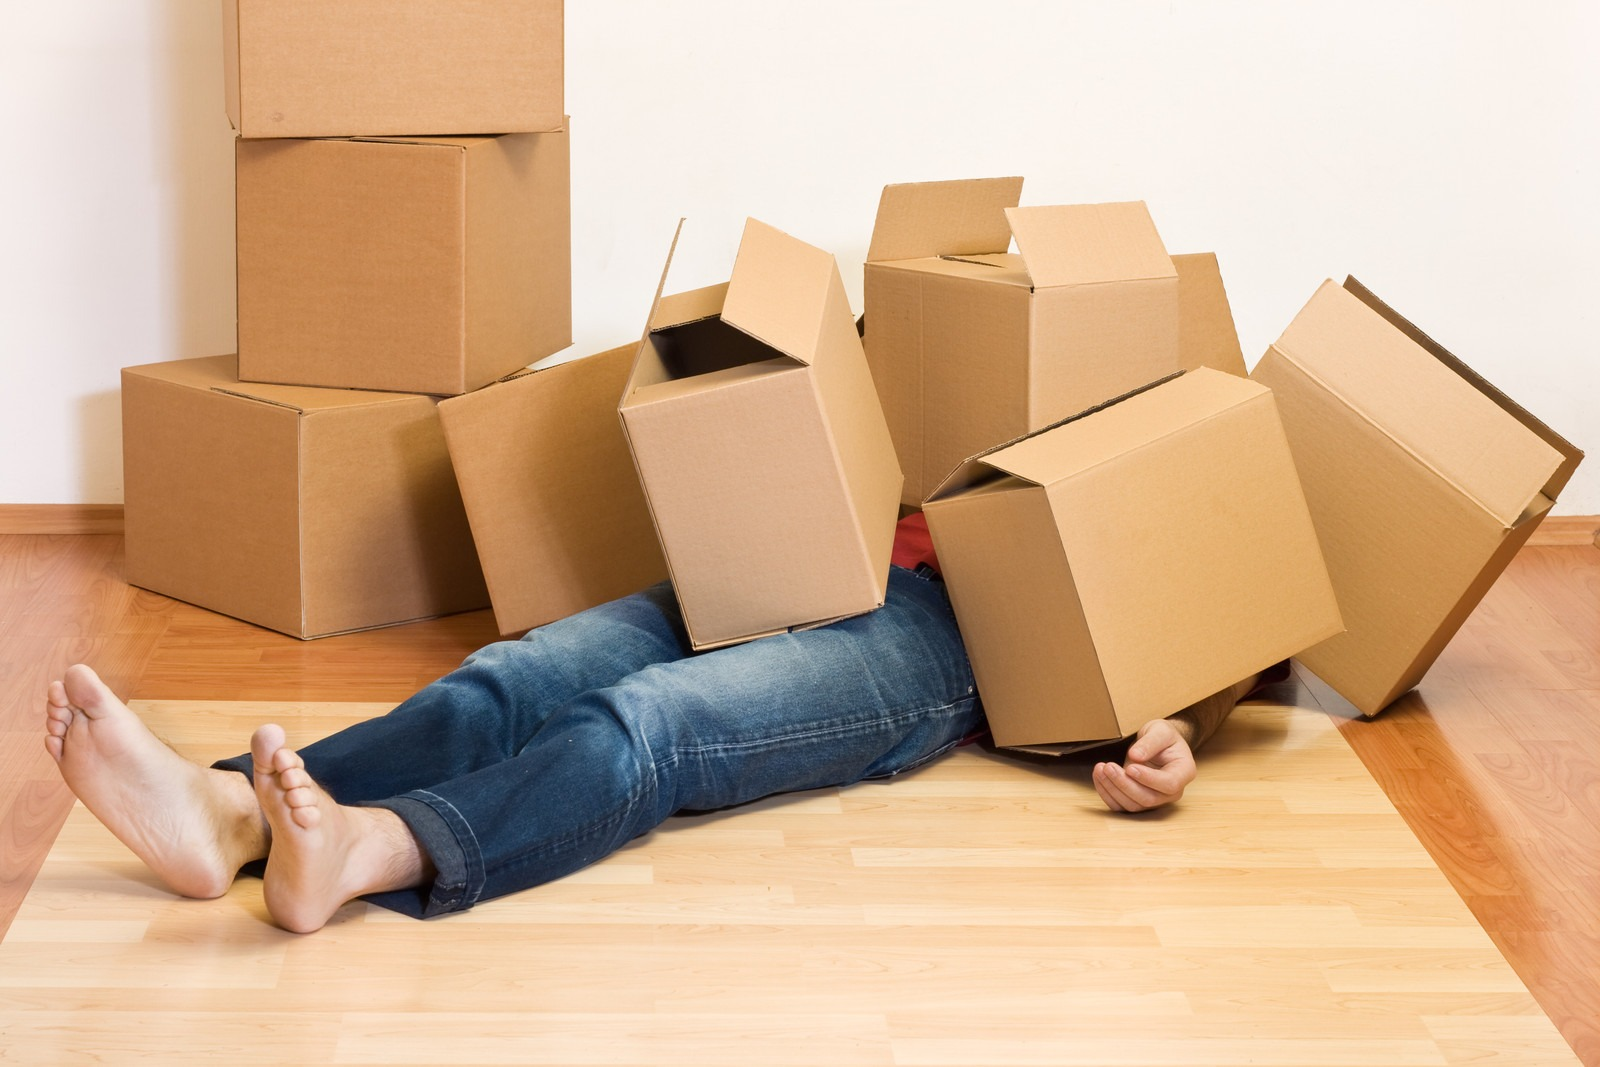 man under a pile of cardboard boxes